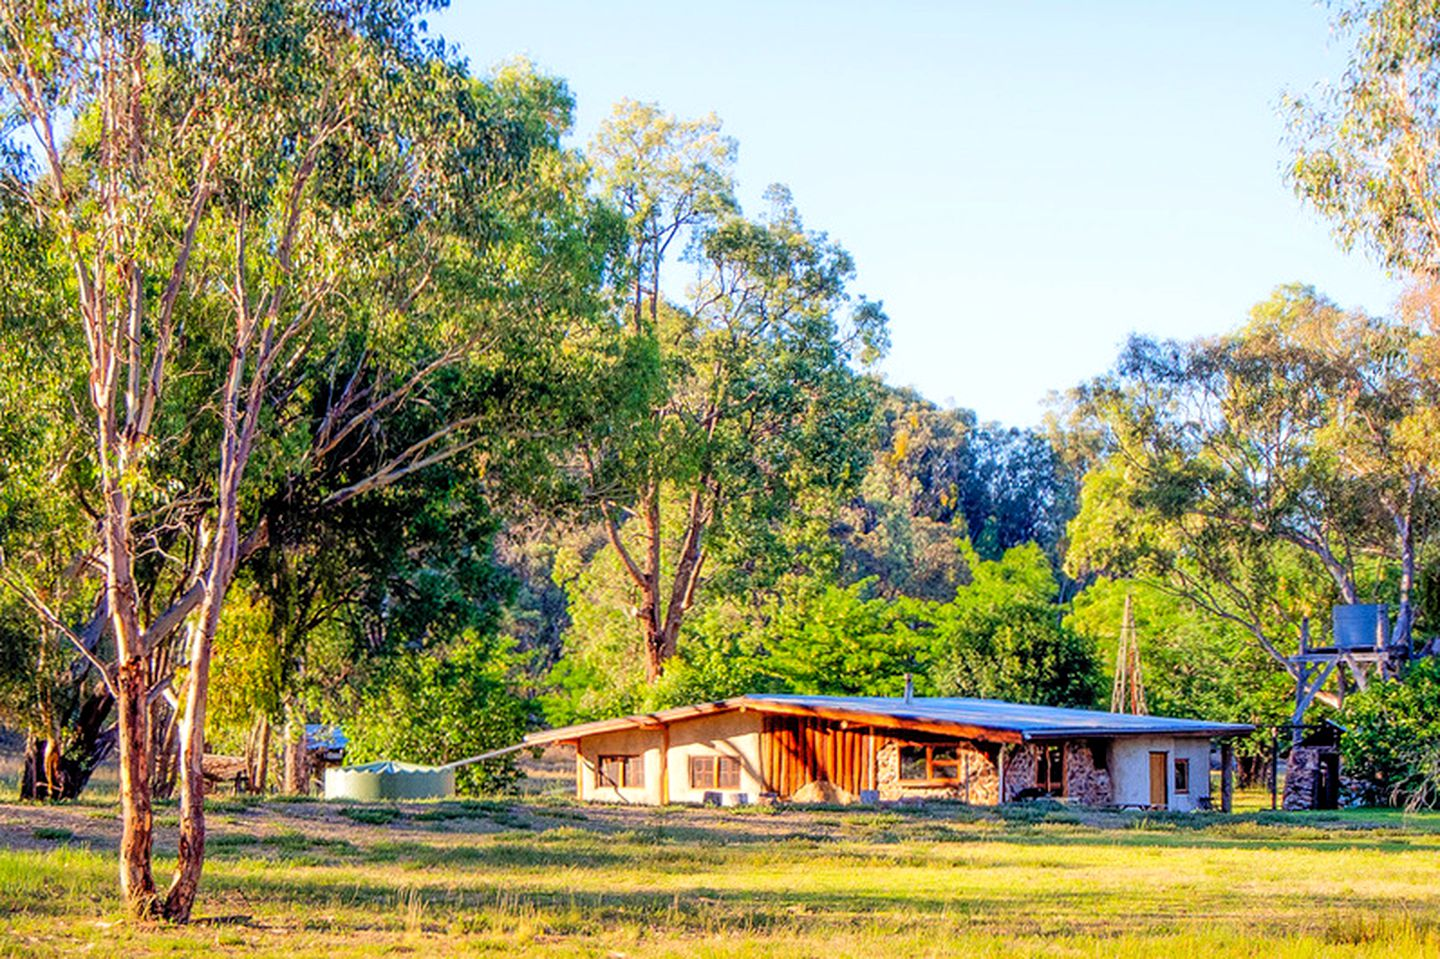 Cosy Coonabarabran accommodation, a great place to experience a NSW farm stay